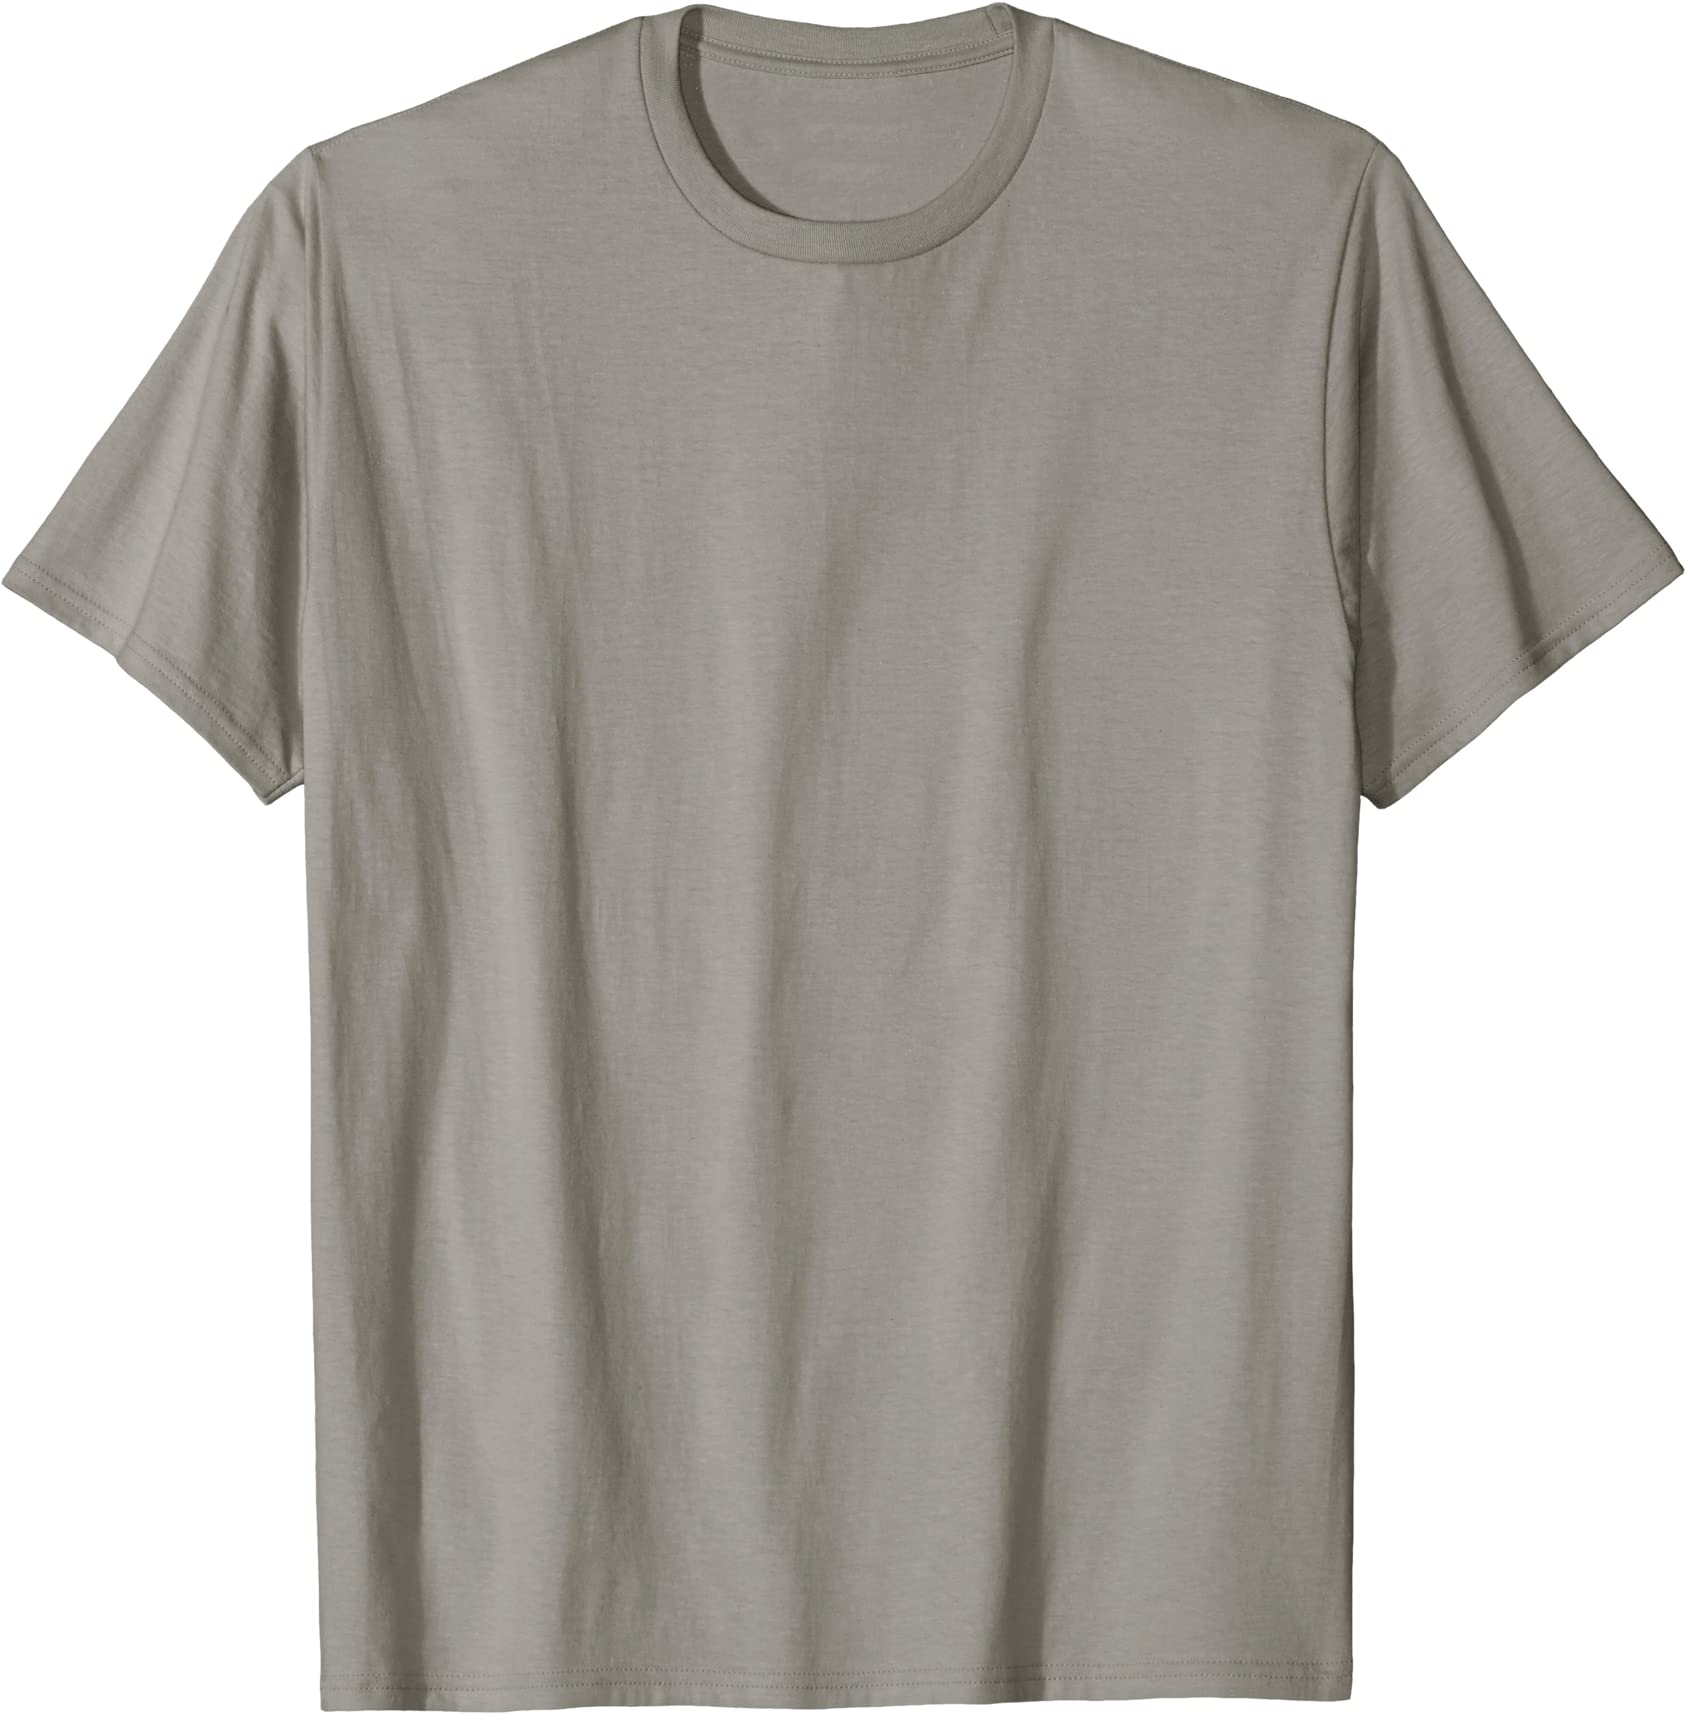 New 100/% Cotton White Cycling T-Shirt-Men/'s Large